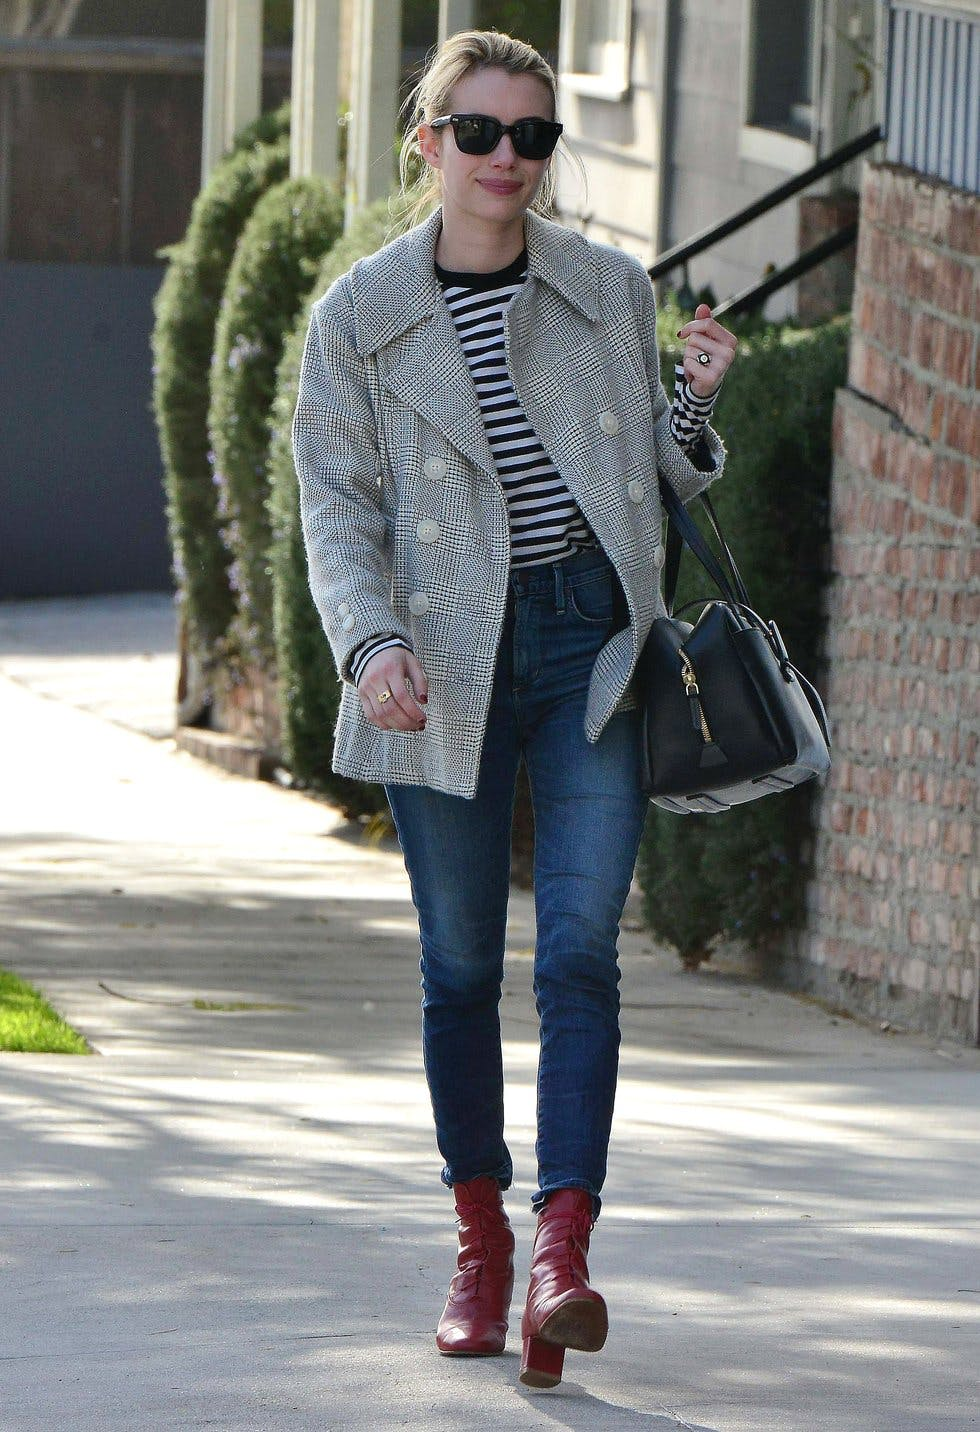 Get Daily Outfit Inspiration With Our Round Up Of The Best